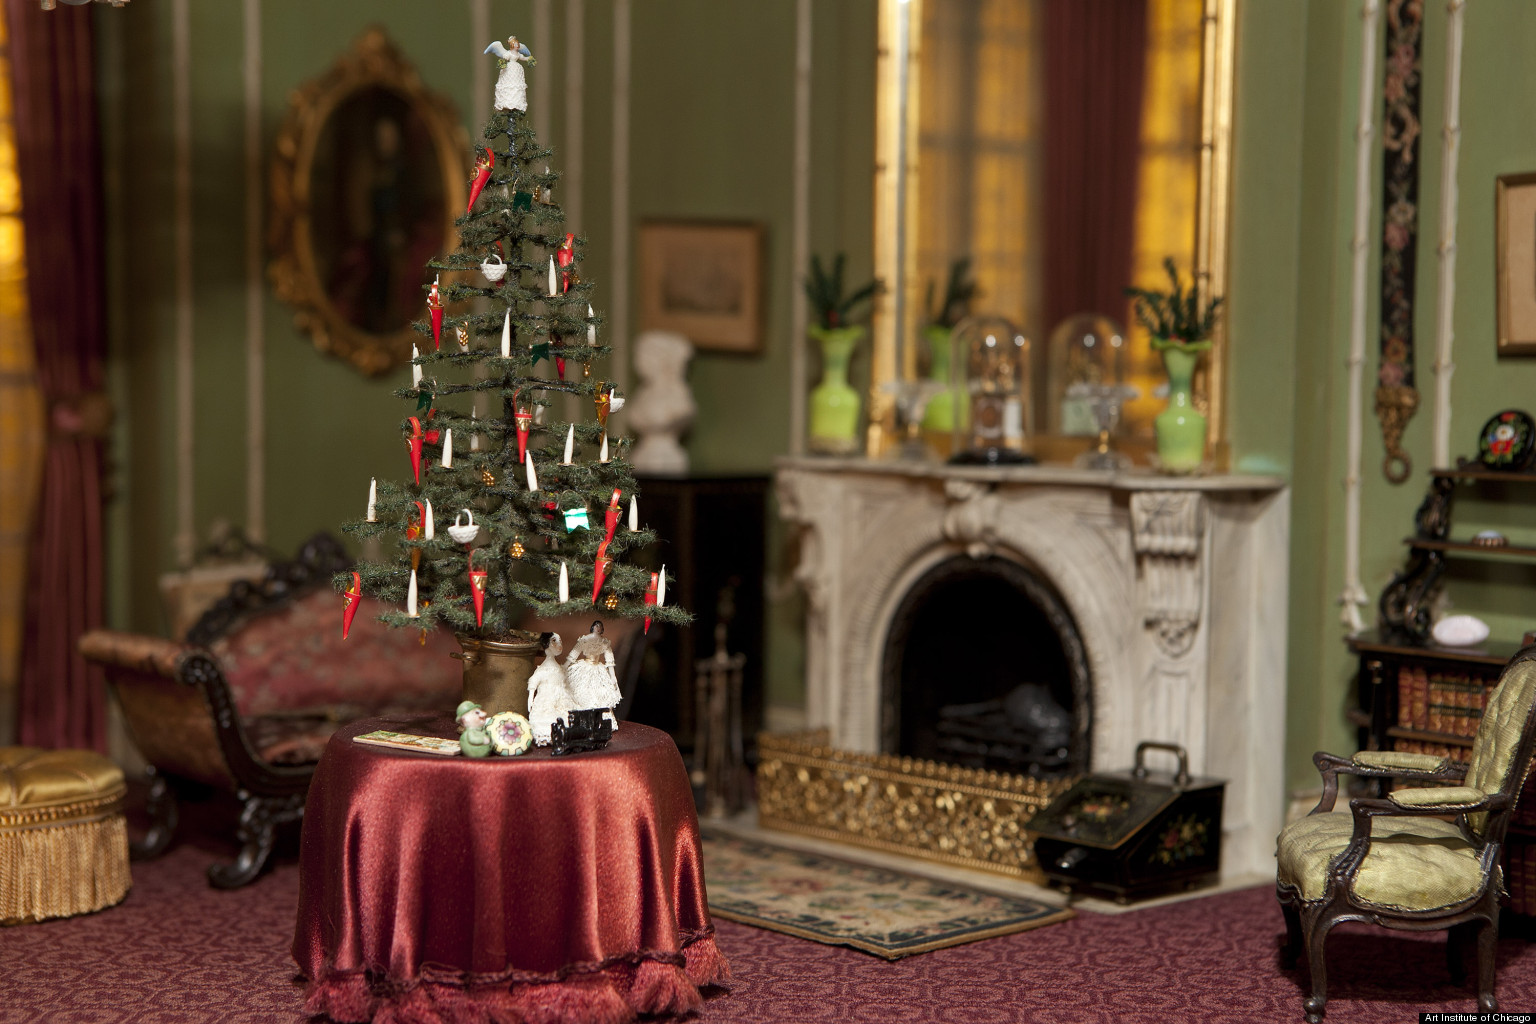 Thorne Miniature Rooms Holiday Trimmings Shows Tiny Decor